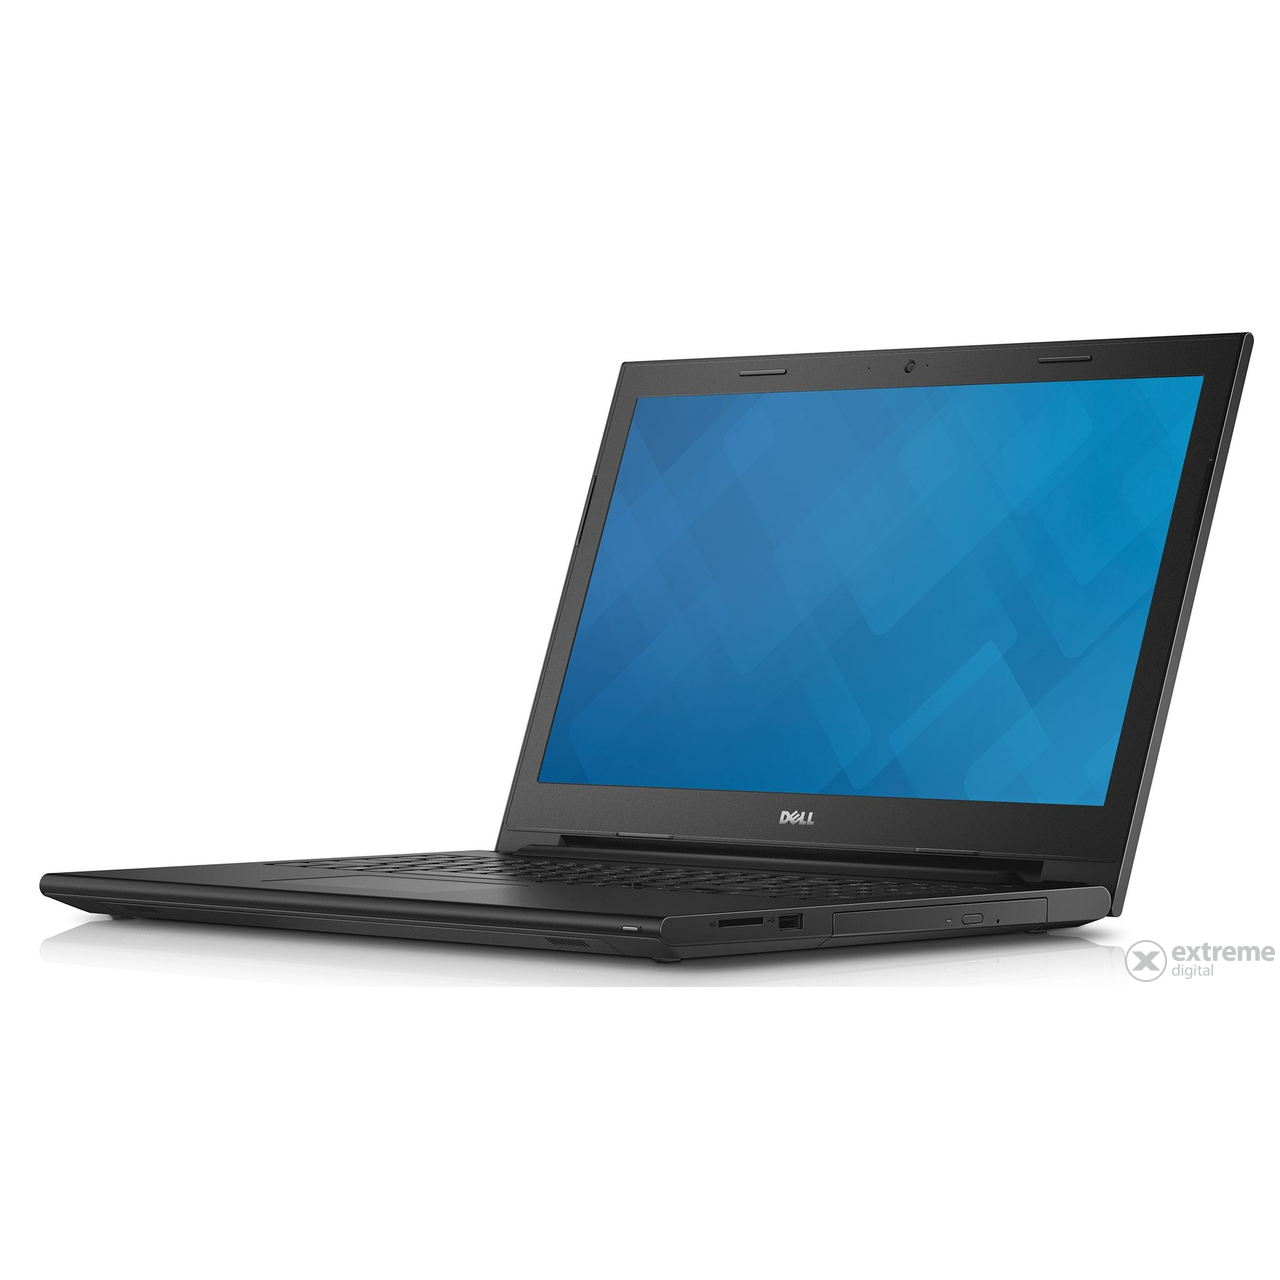 dell-inspiron-3541-16-notebook-windosws-8-1-fekete_f8ed2781.jpg